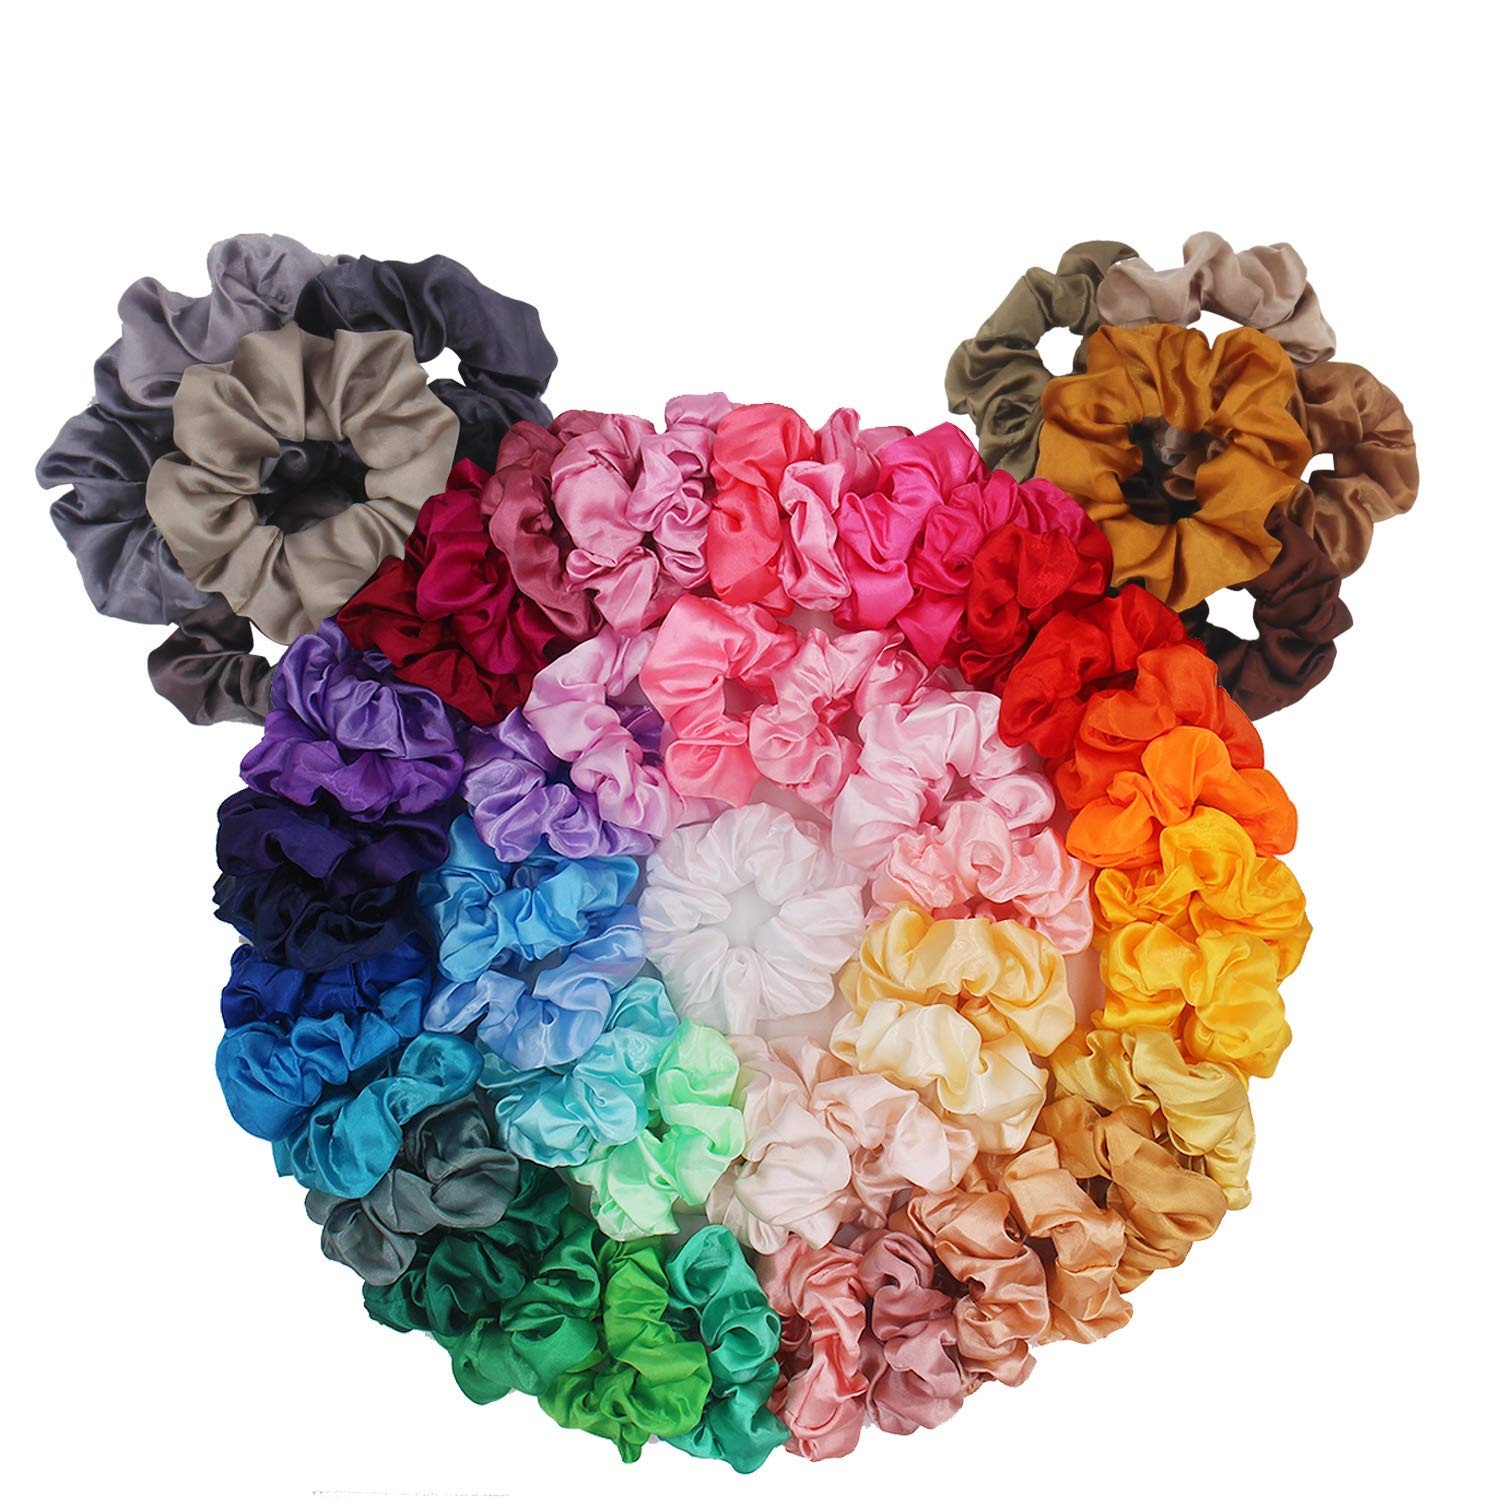 60 Pack Hair Scrunchies, BeeVines Satin Silk Scrunchies for Hair, Silky Hair Accessories for Girls, VSCO Girl Scrunchies Scrunchy Hair Tie Ropes for Teens, Scrunchy Pack with Ponytail Makers Gift Bag